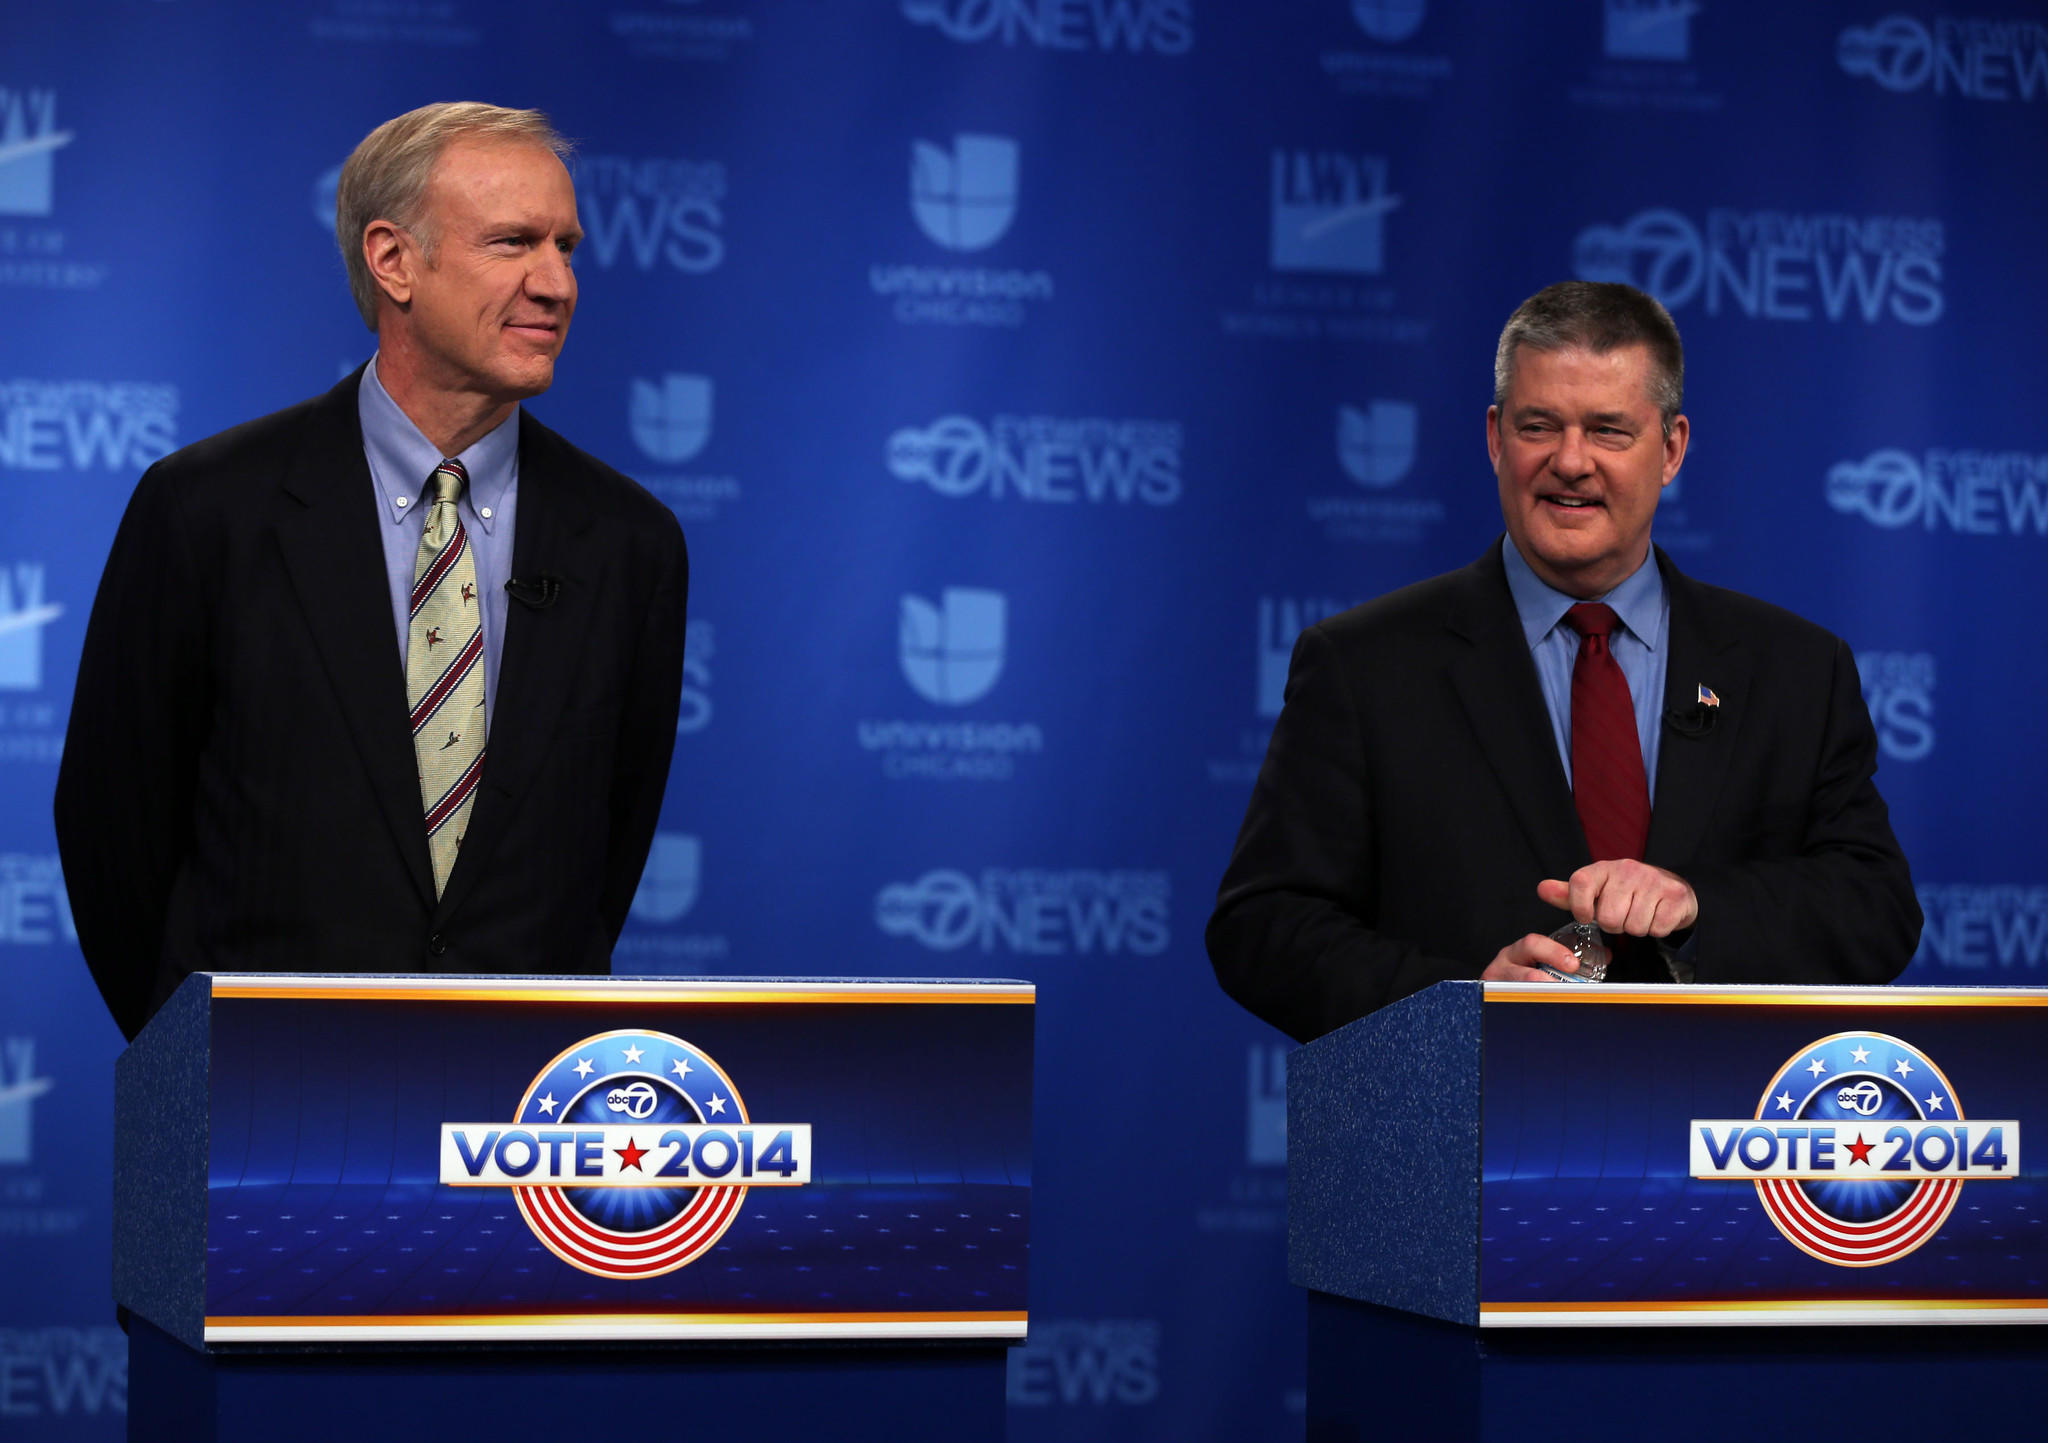 Republican candidates for governor of Illinois Bruce Rauner, left, and Dan Rutherford prepare to debate each other in an ABC television studio in Chicago on Thursday, February 27, 2014.